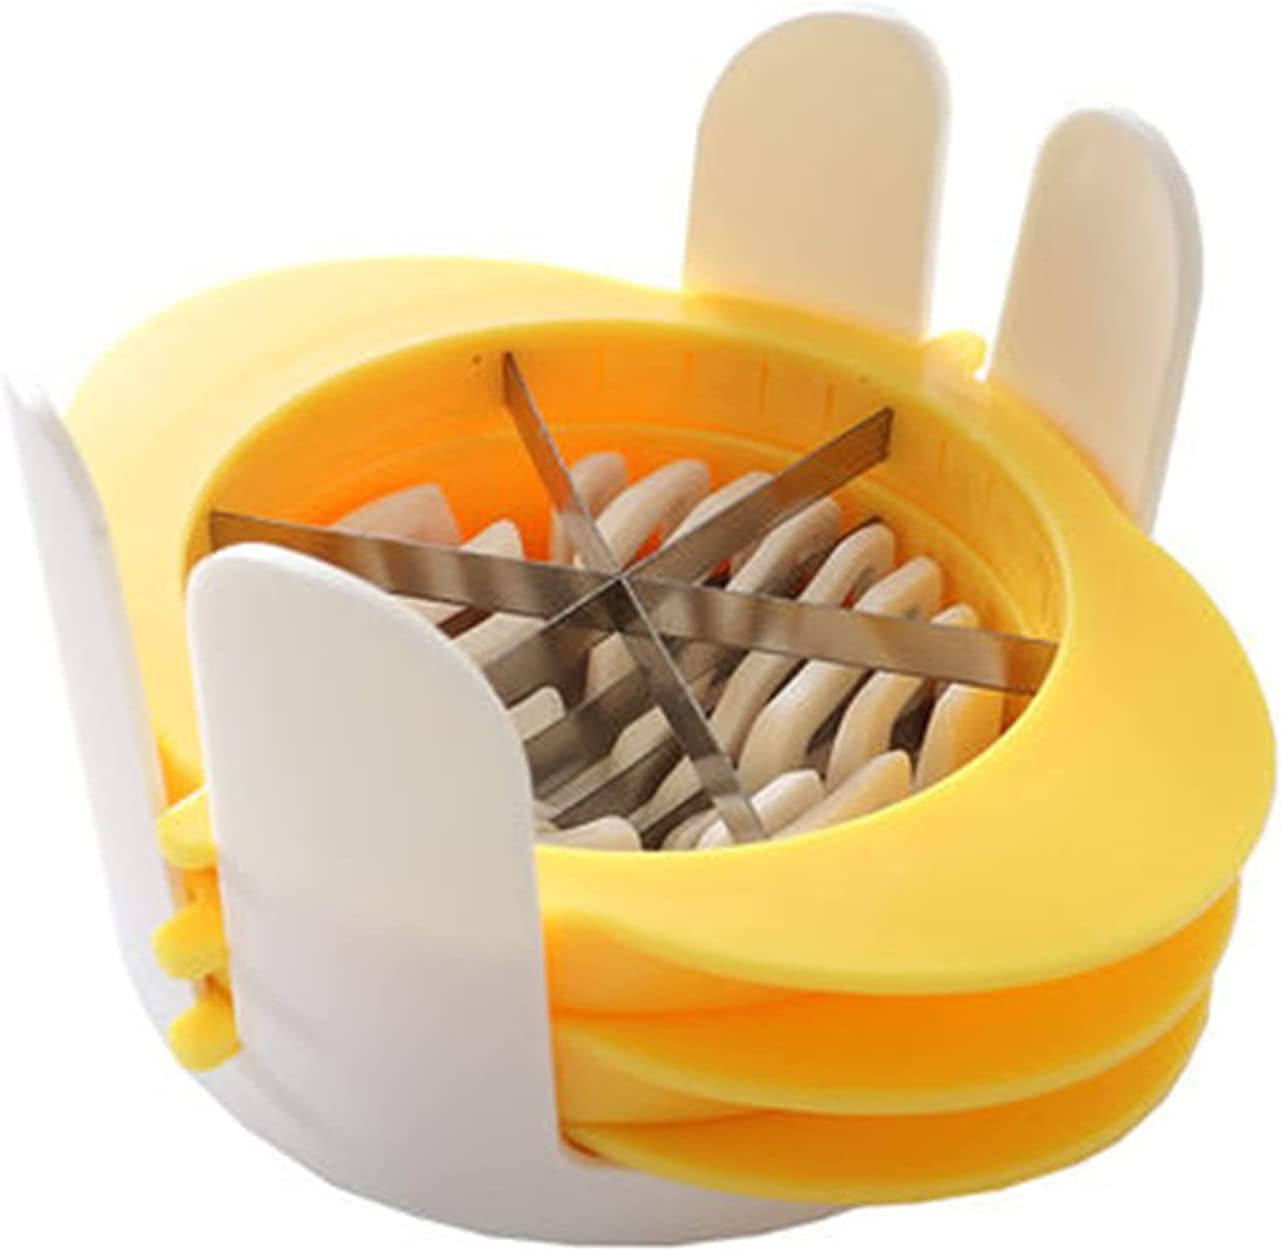 Today's only QERNTPEY Egg Slicer Household Preserved Cutter Three-in-one Popular products